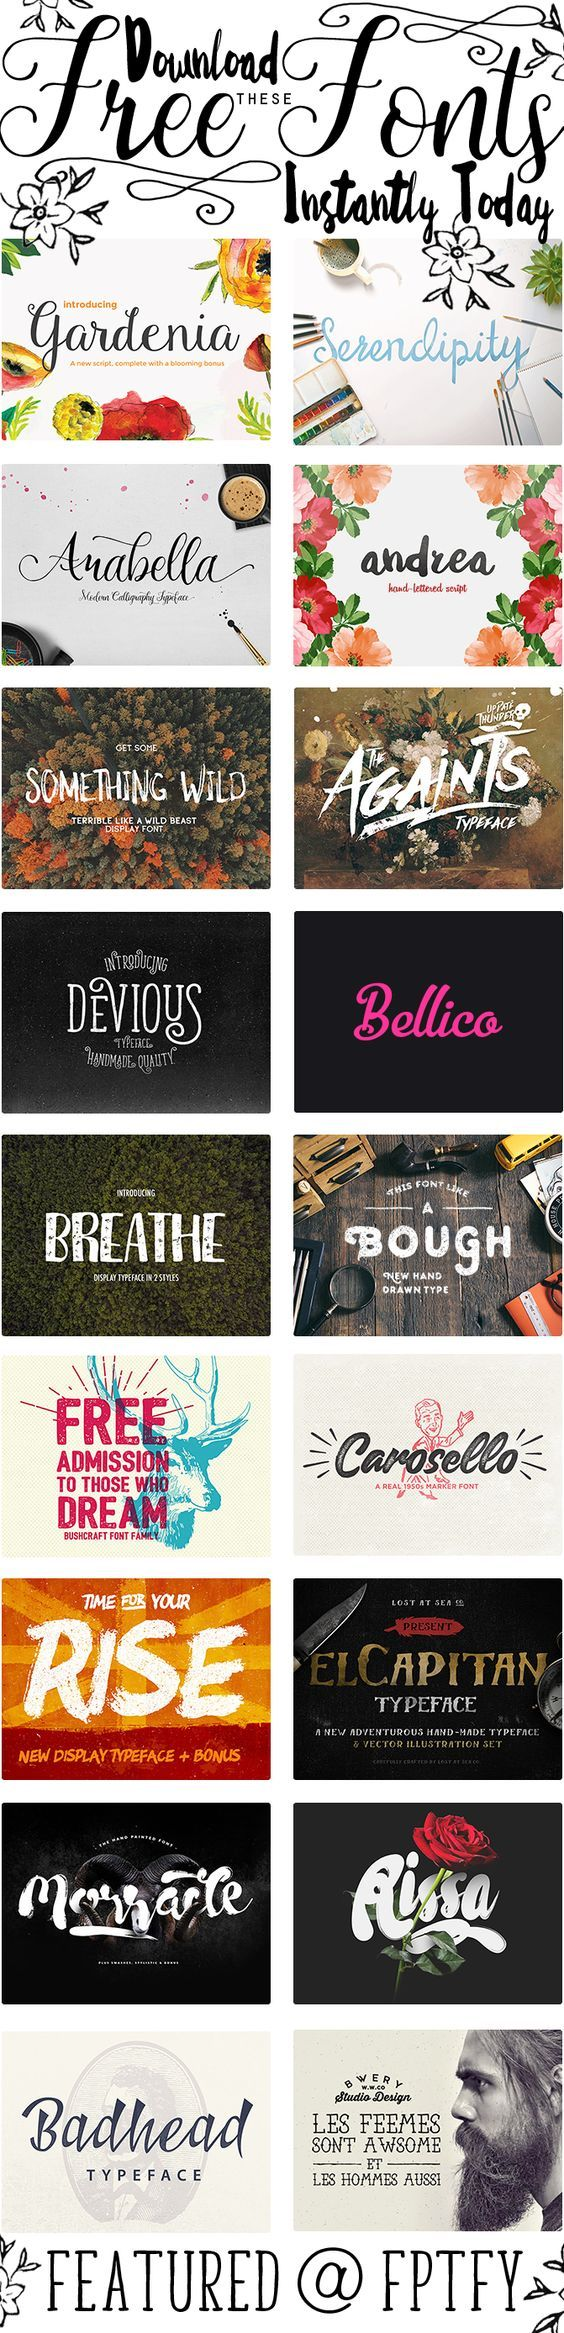 Gorgeous Free Fonts Over At Pixel Buddha - Free Pretty Things For You